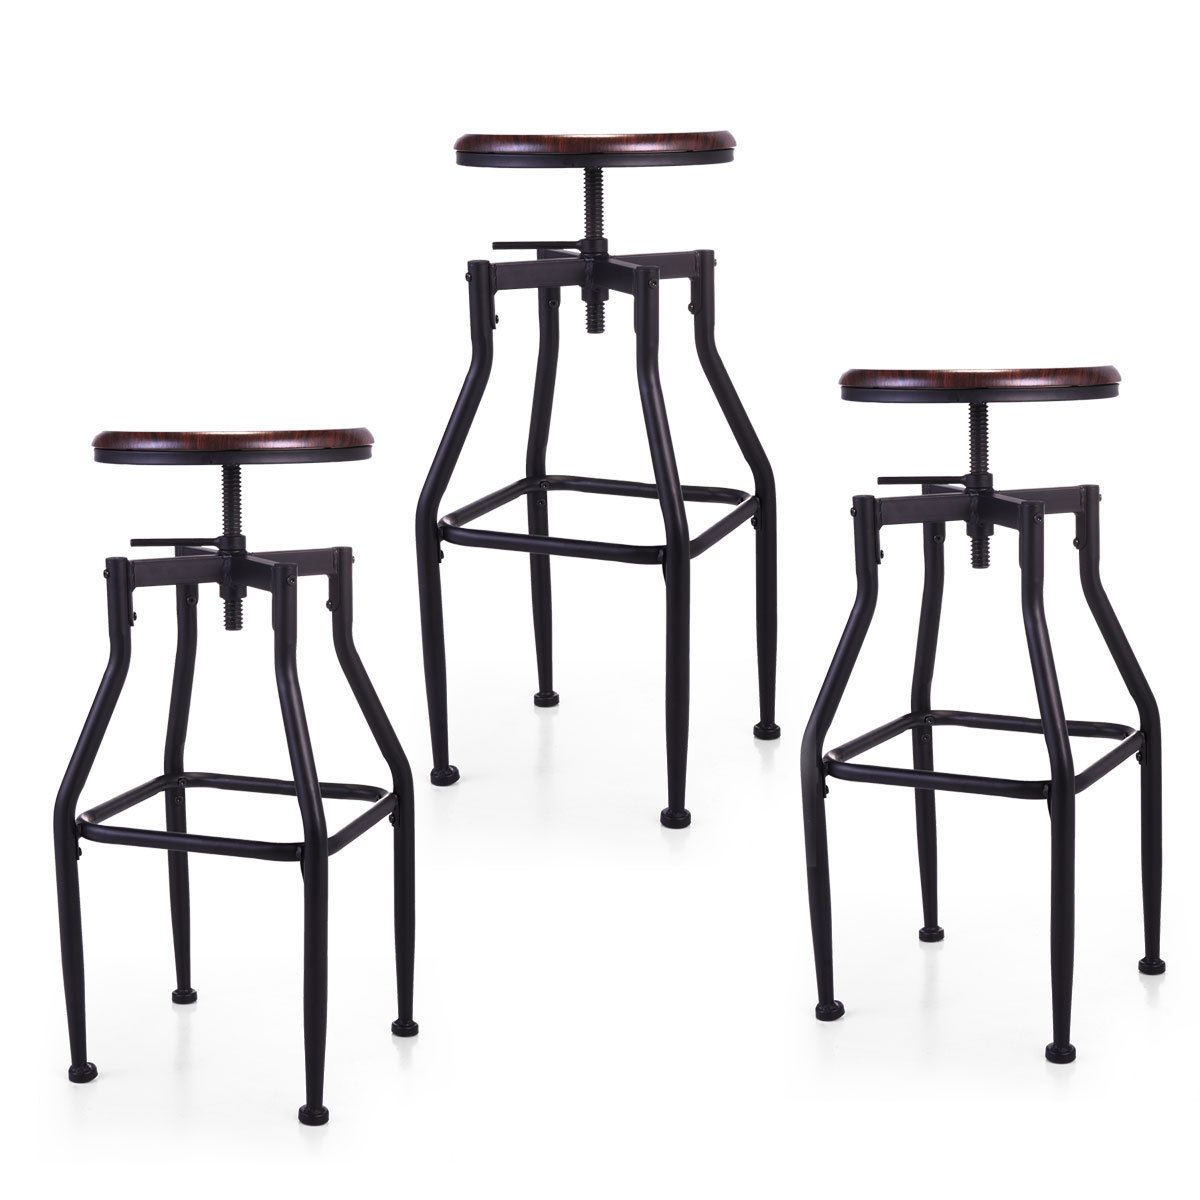 Excellent 1 2 3 Set Height Adjustable Industrial Swivel Metal Counter Pdpeps Interior Chair Design Pdpepsorg